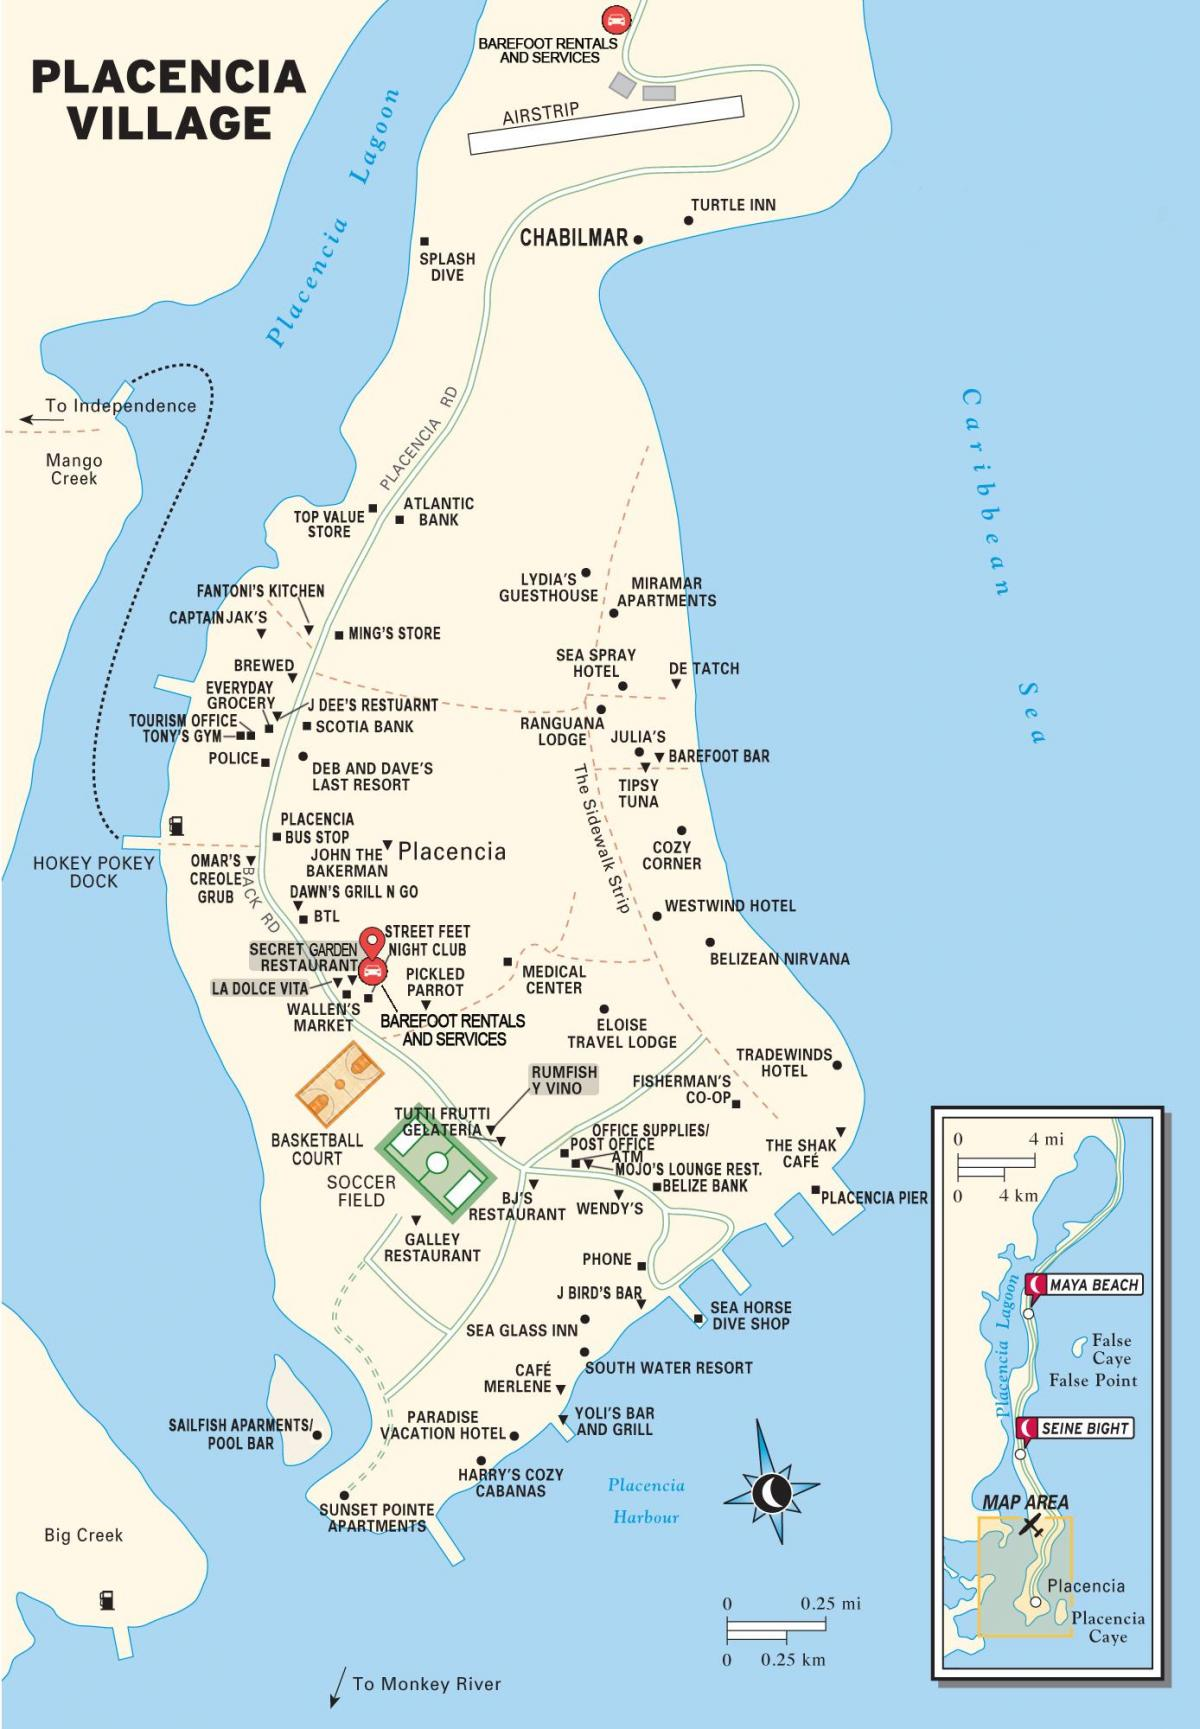 mapa placencia village Belize